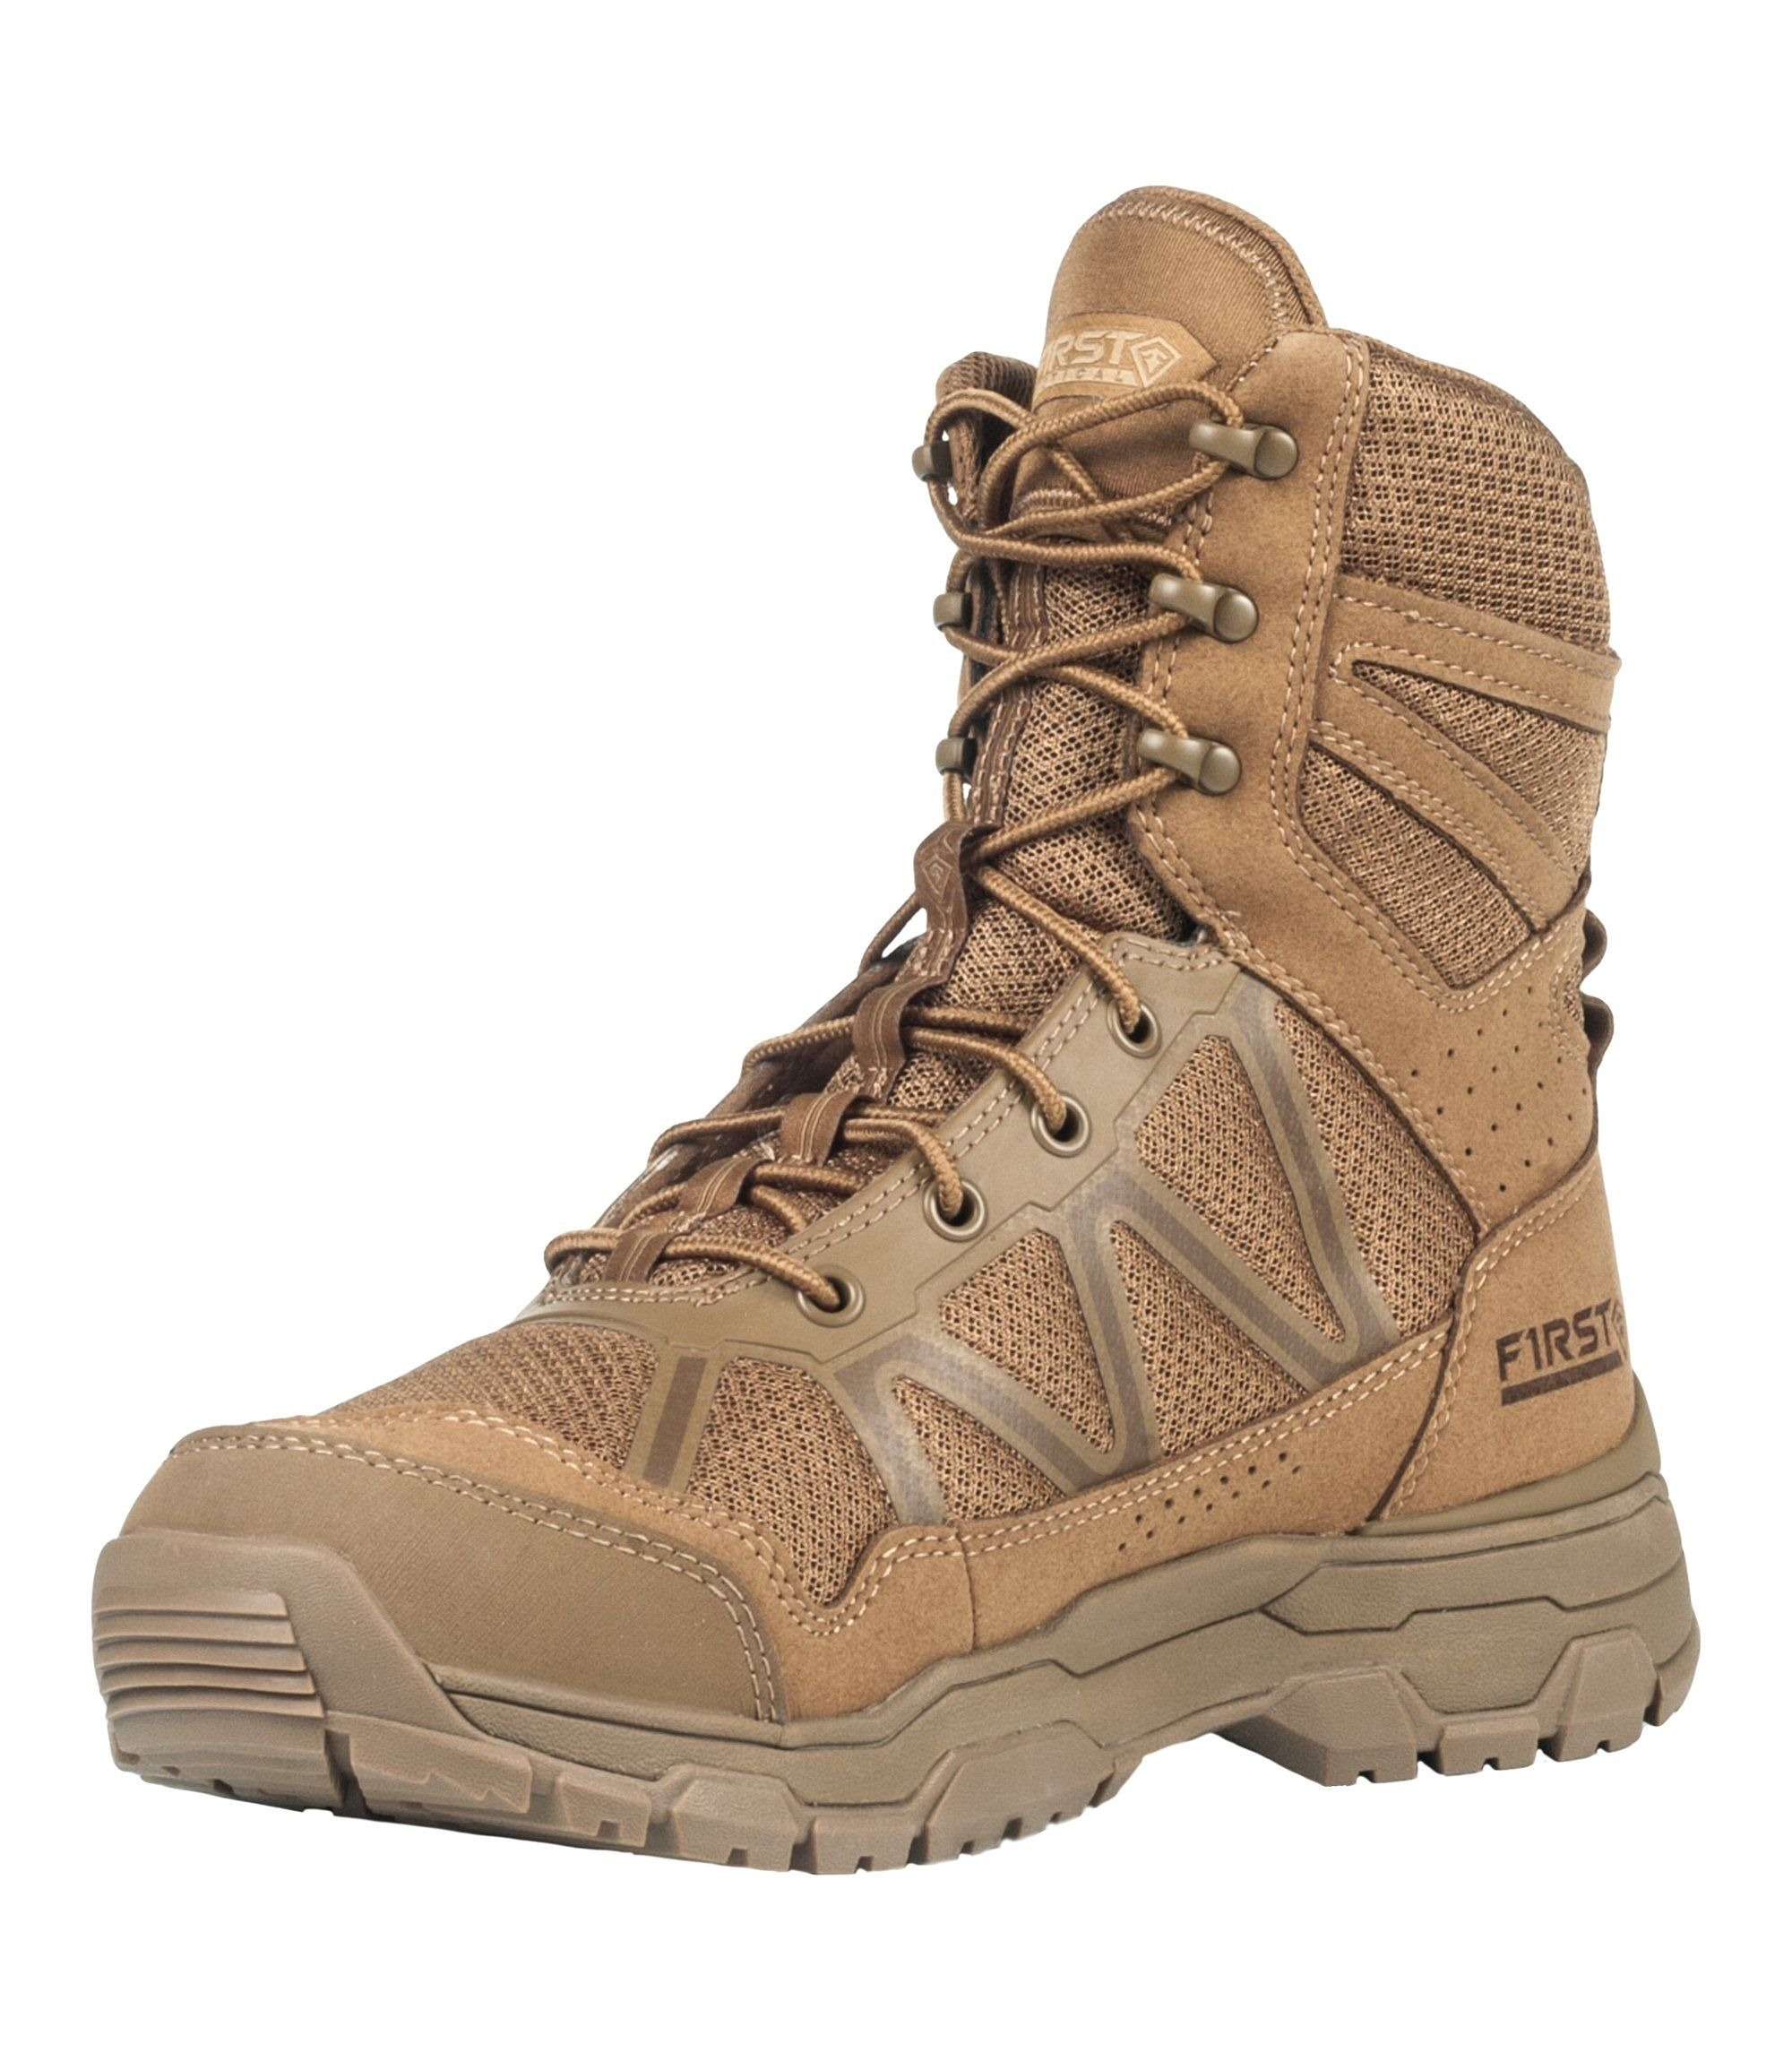 """Image of Buty first tactical m's 7"""" operator boot coyote 165010 - rozmiar (a) 41 (u1t/165010 060 7 - 41)"""